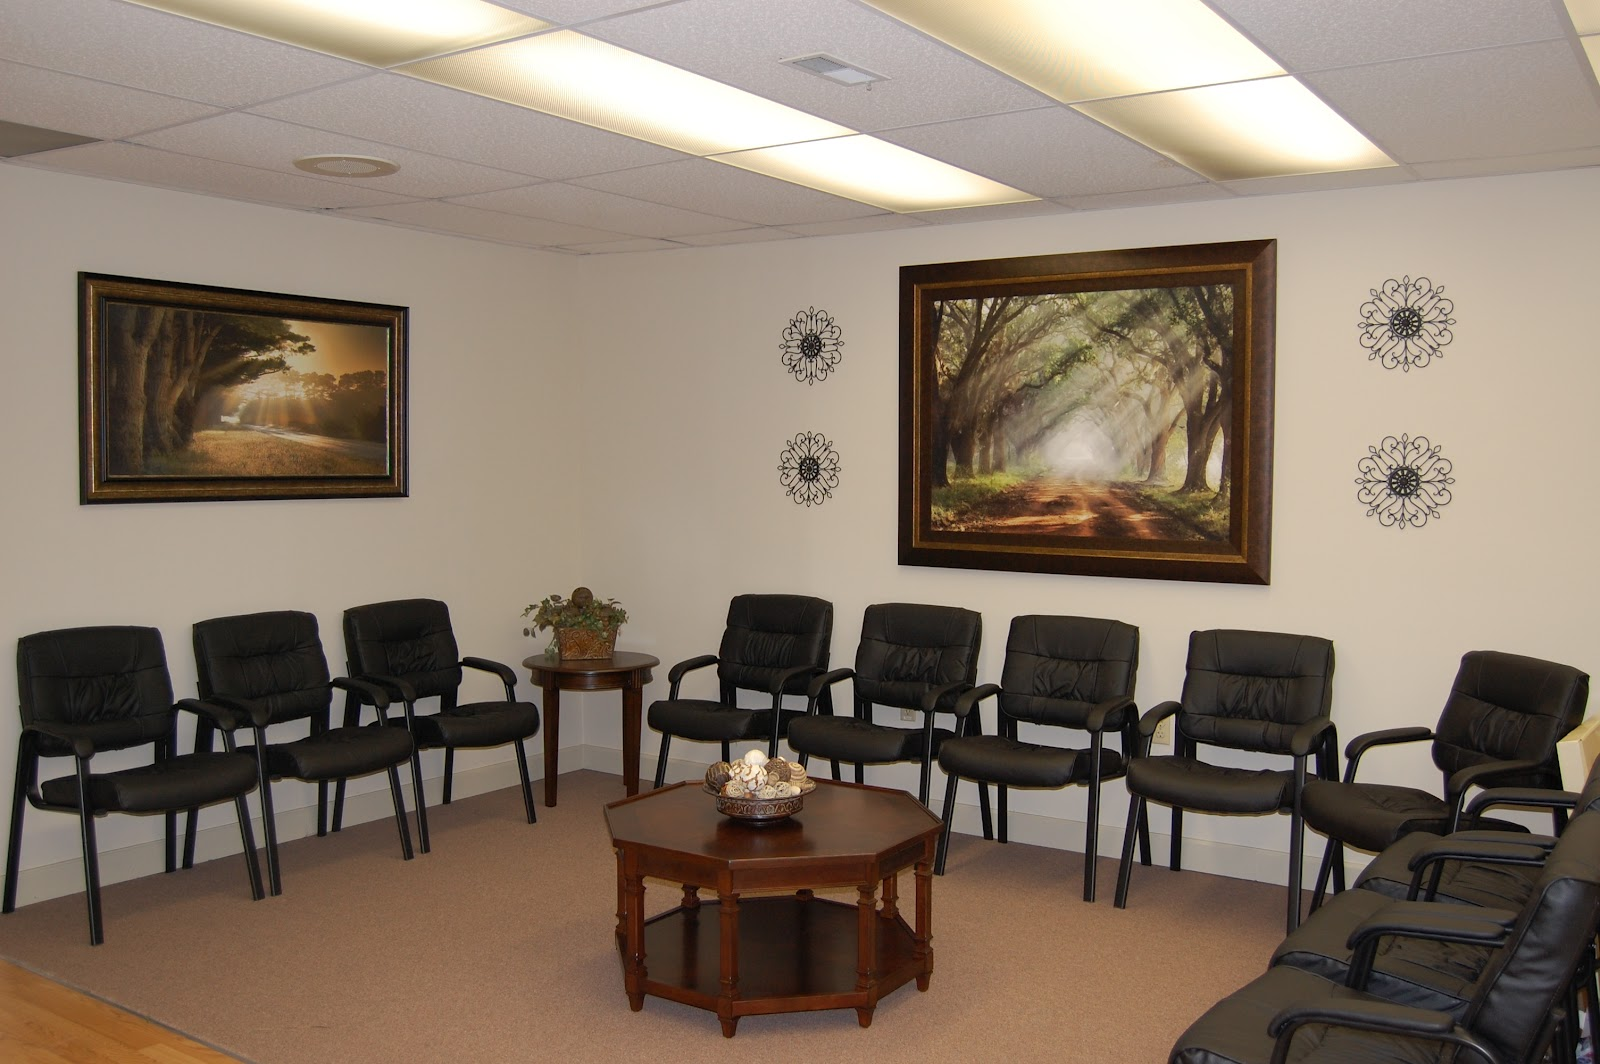 L M Cline's Interior Decorating: Tranquil Doctor's Office ...